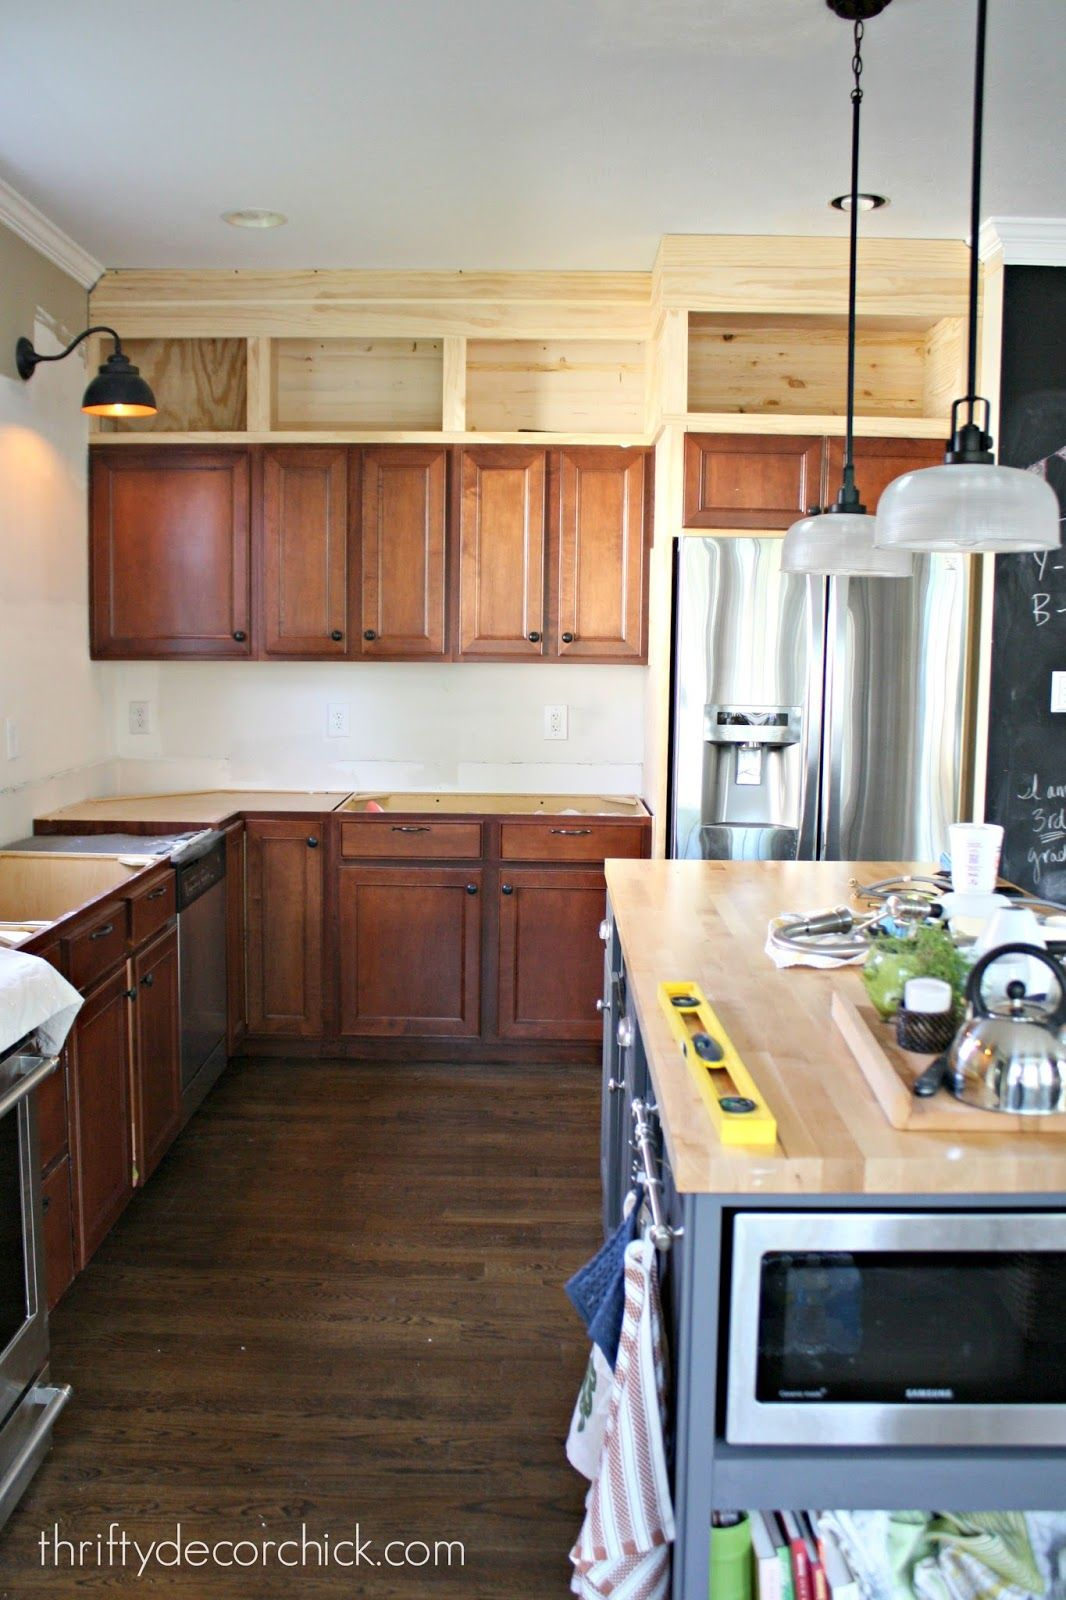 Building Cabinets Up To The Ceiling Kitchen Cabinet Remodel Above Kitchen Cabinets Kitchen Cabinets To Ceiling